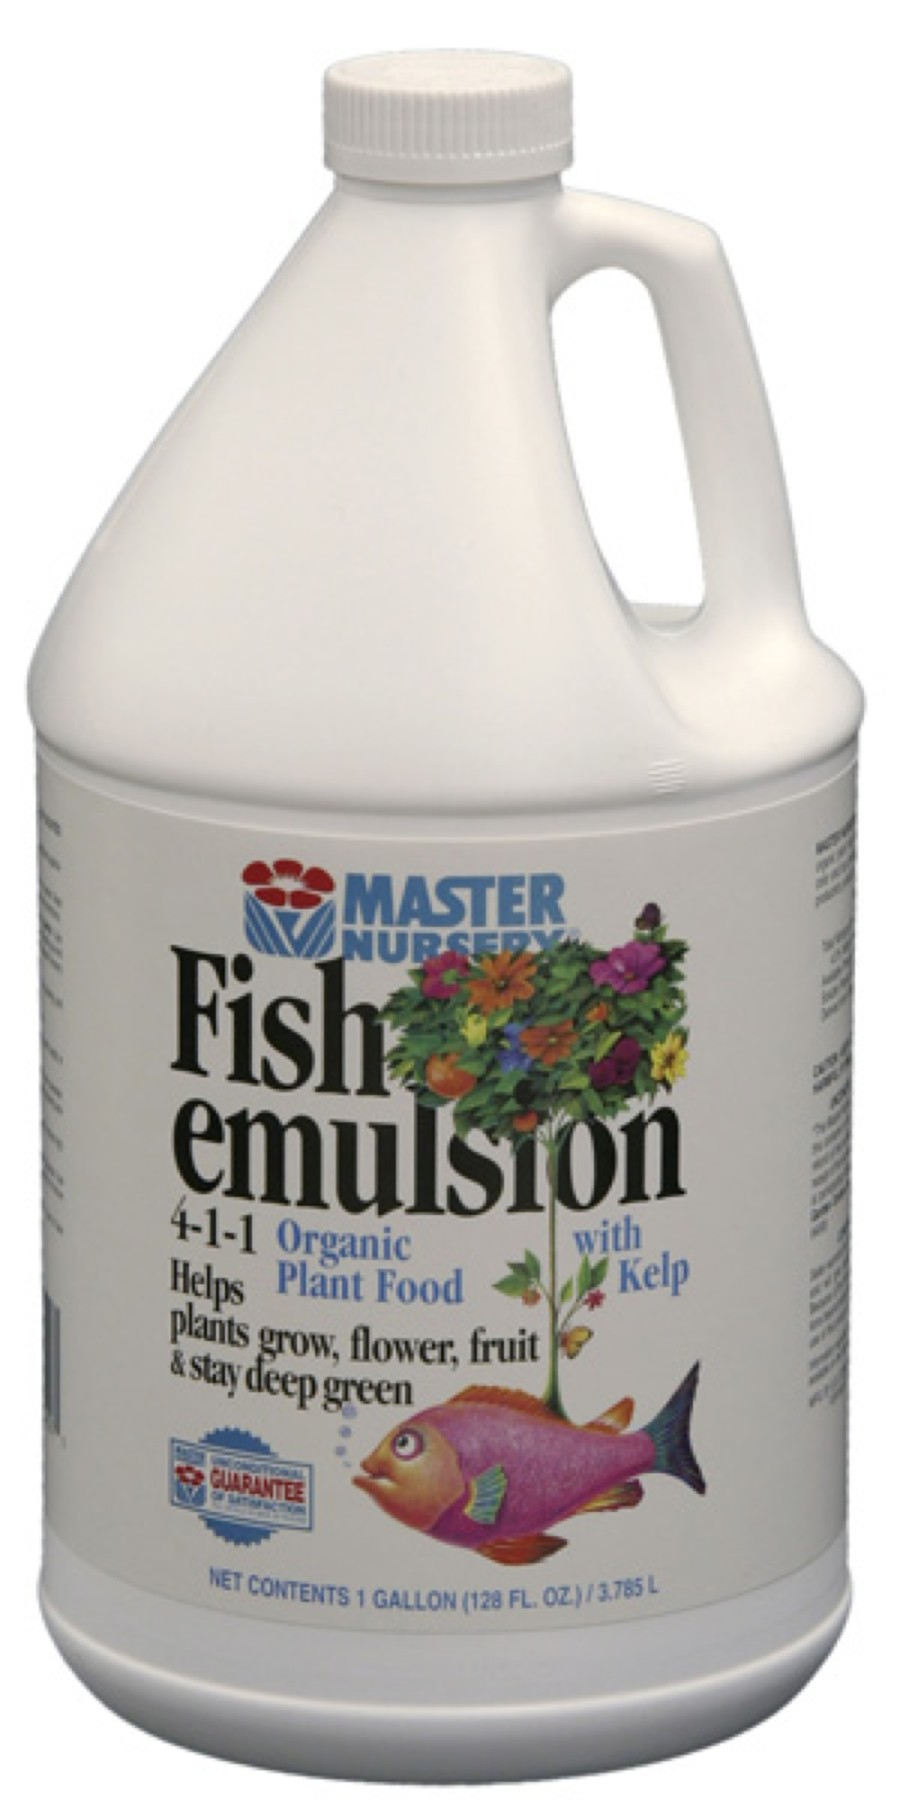 Master Nursery Fish Emulsion 4-1-1 Organic Plant Food Concentrate